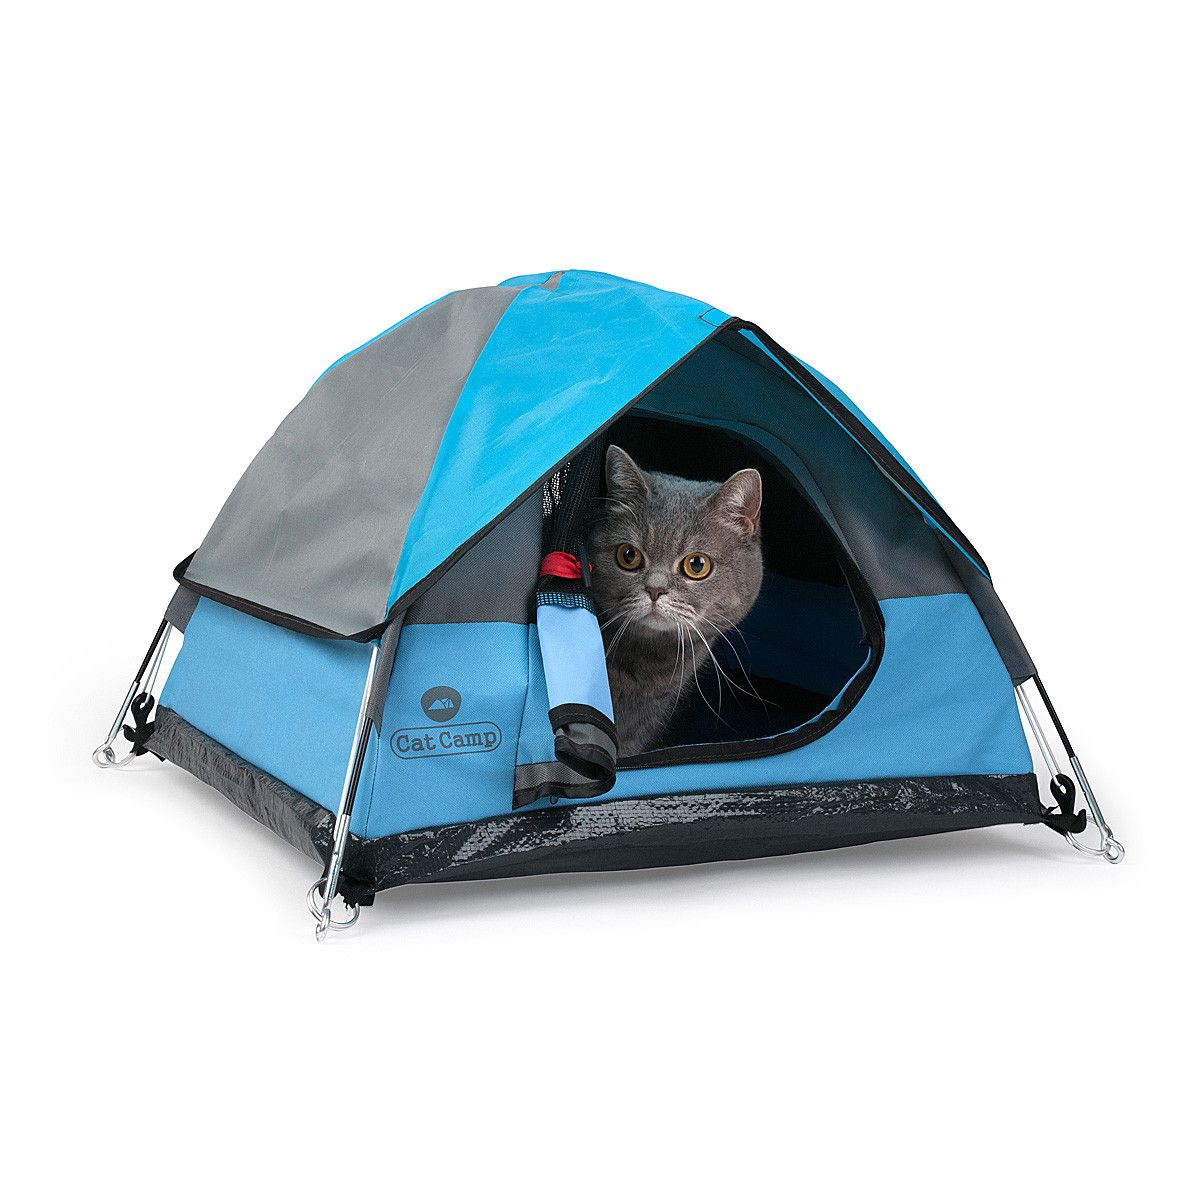 Cat C& - The teeny tiny tent for indoor cats  sc 1 st  Pinterest & Cat Camp - The teeny tiny tent for indoor cats | Tents Camping ...